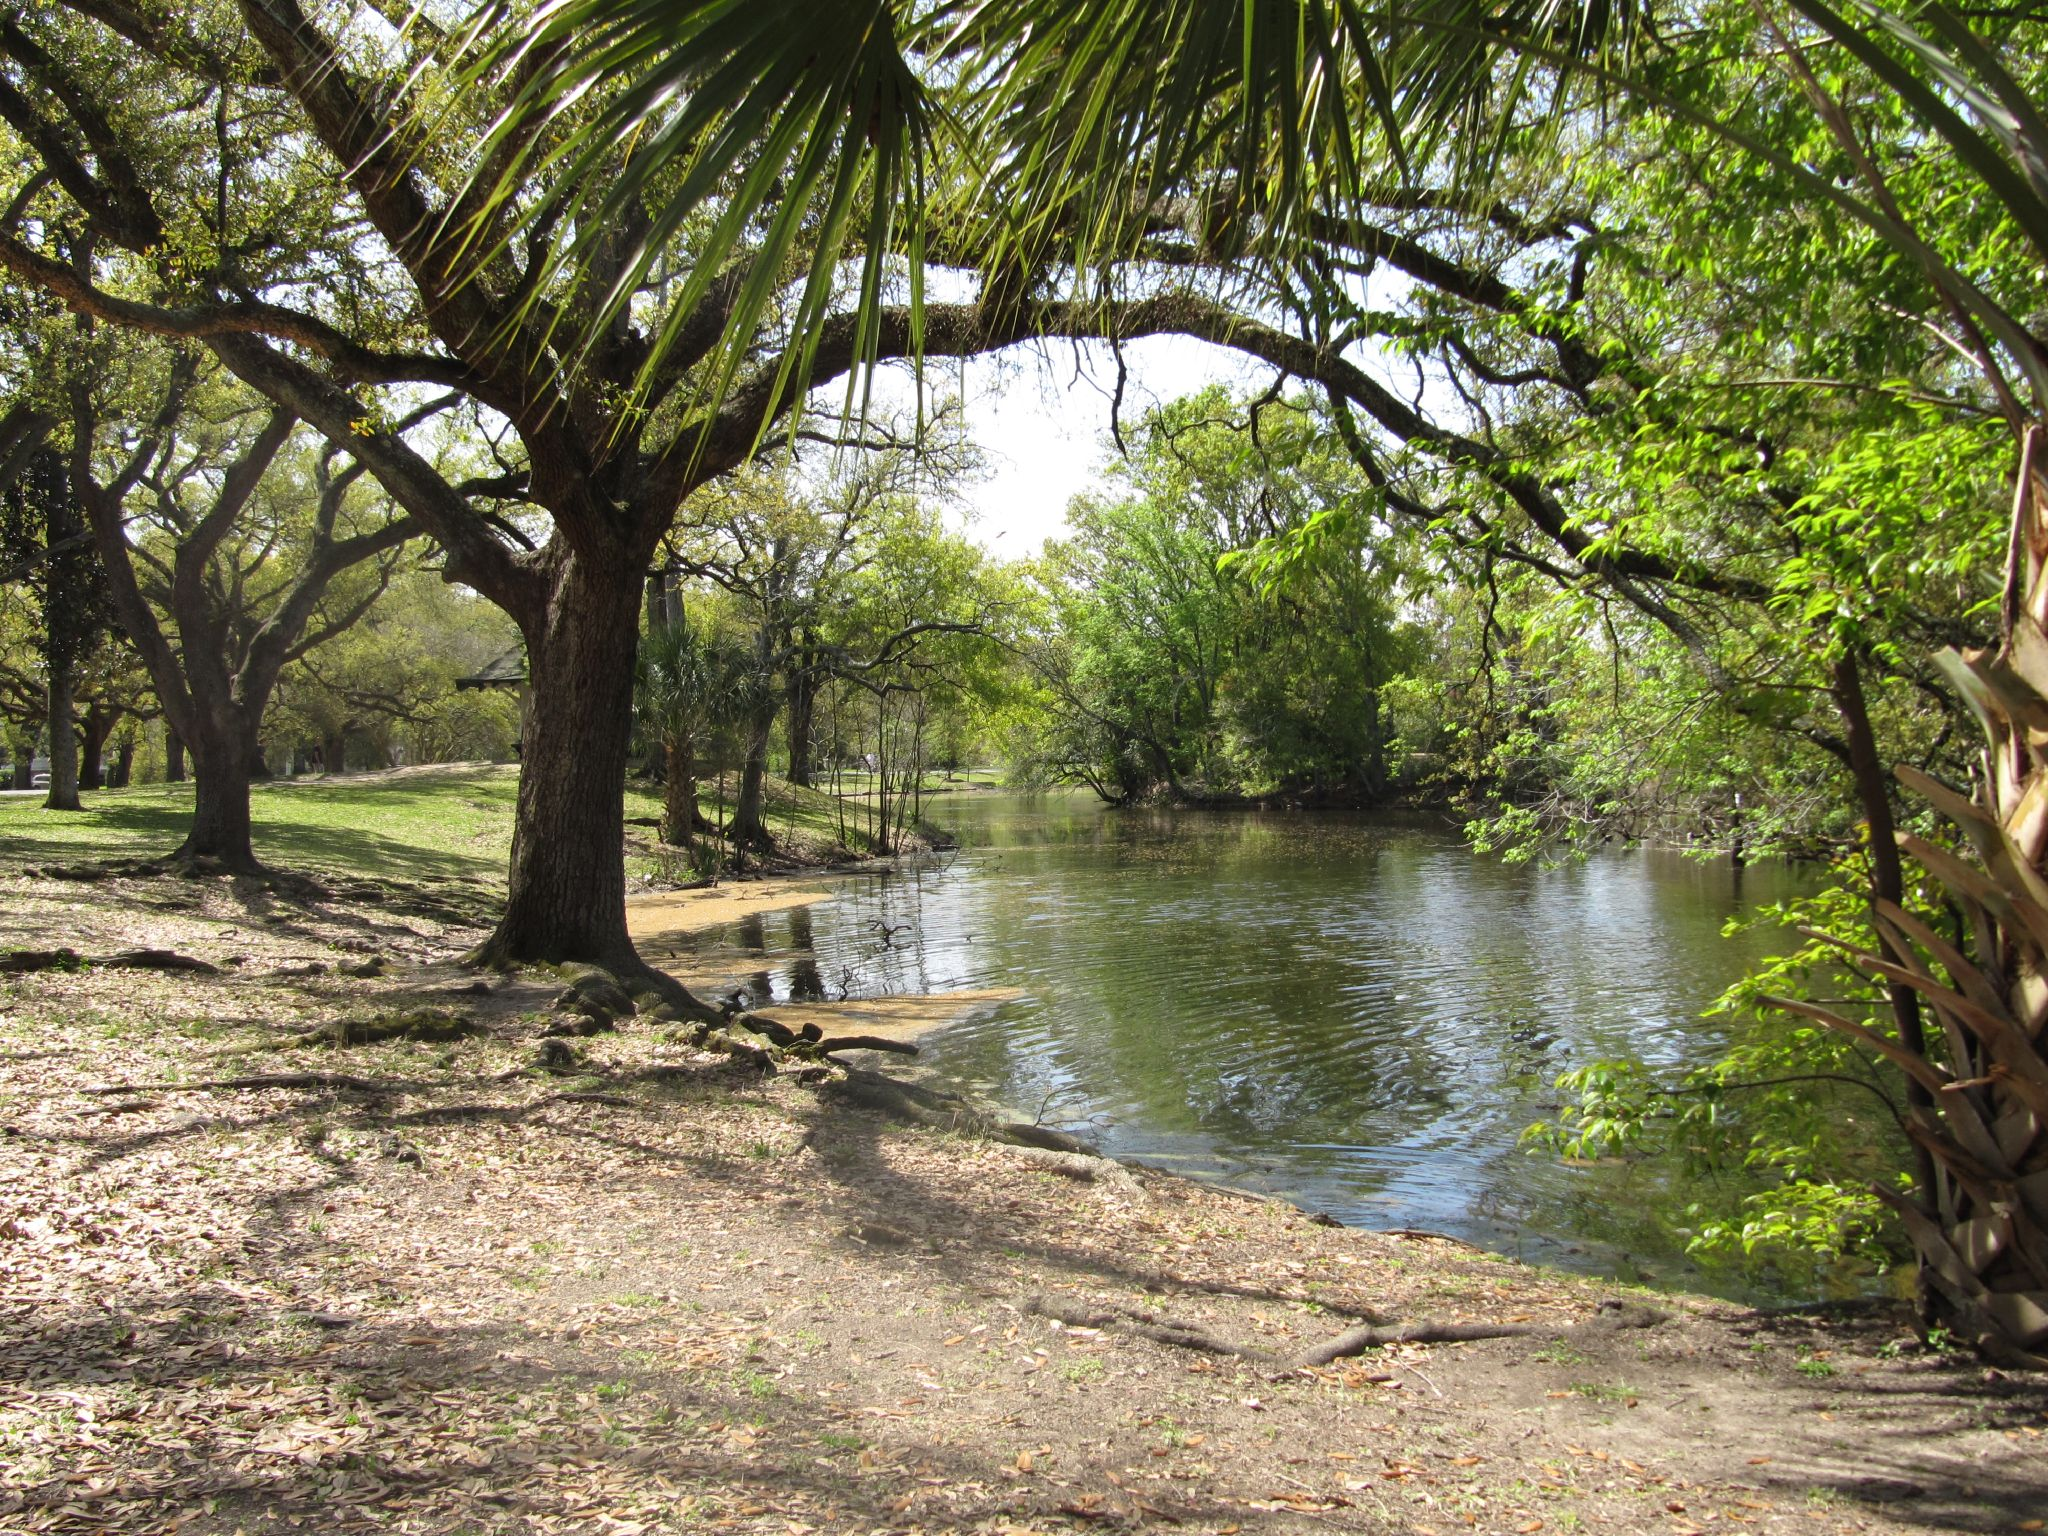 Audubon_Park_New_Orleans_Lake.jpg